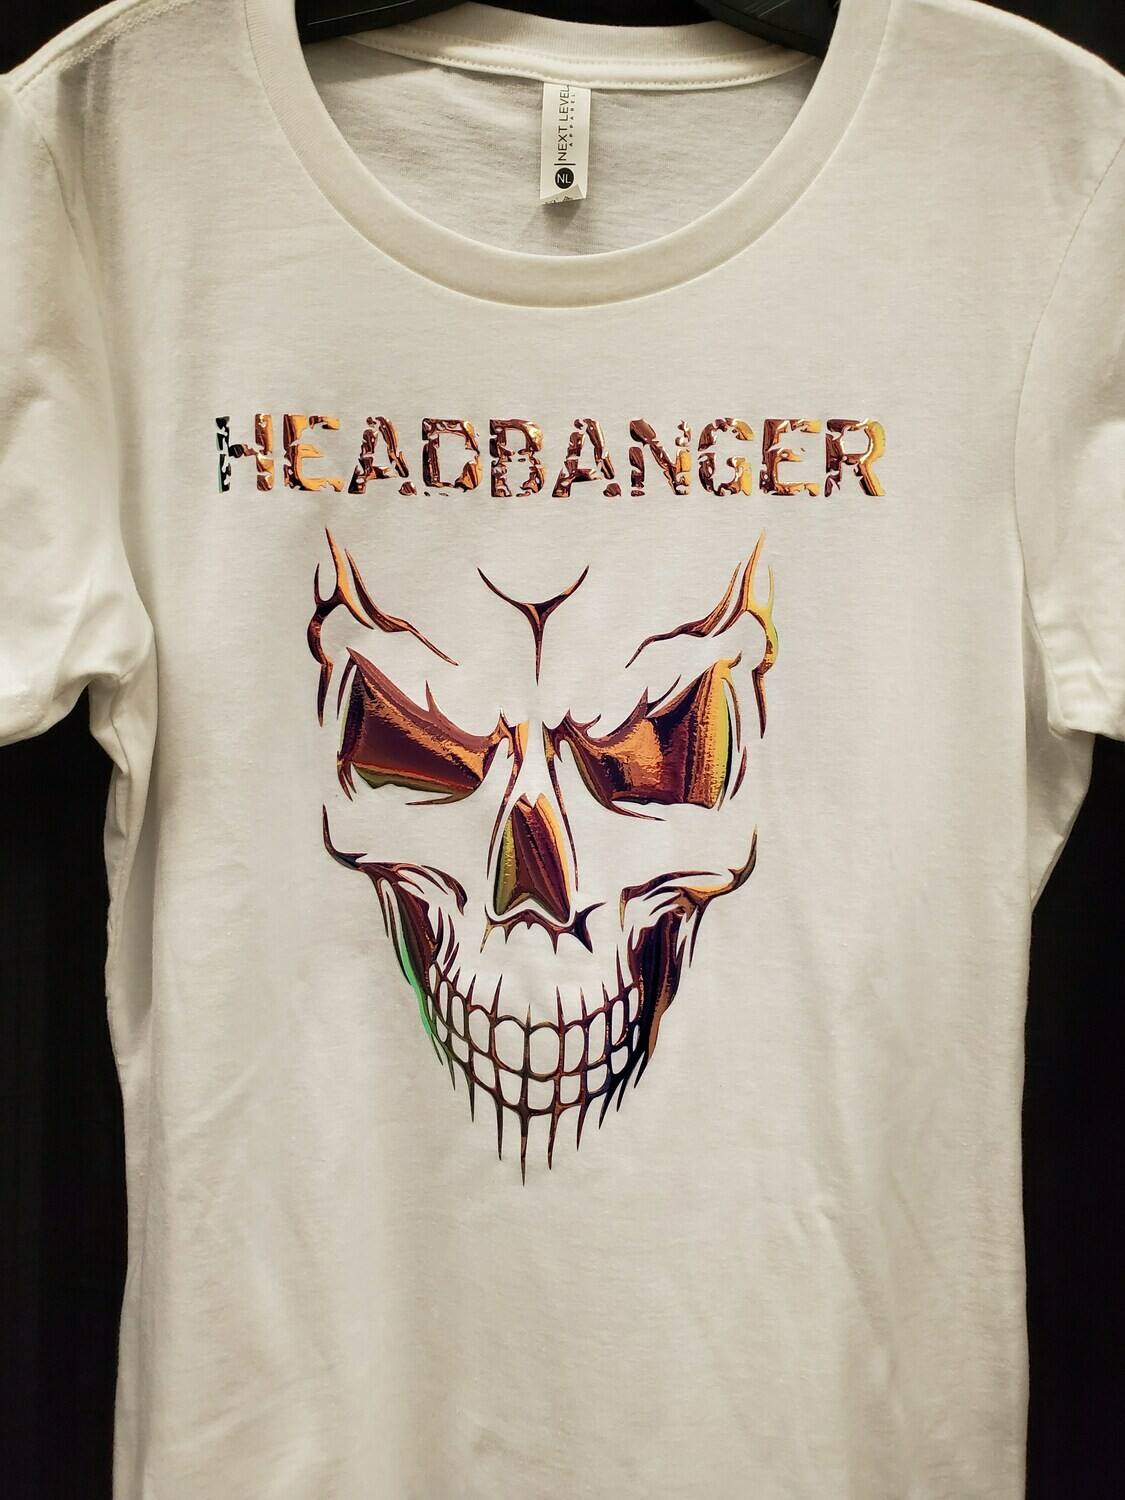 Headbanger Smiling Skull Women's T-Shirt